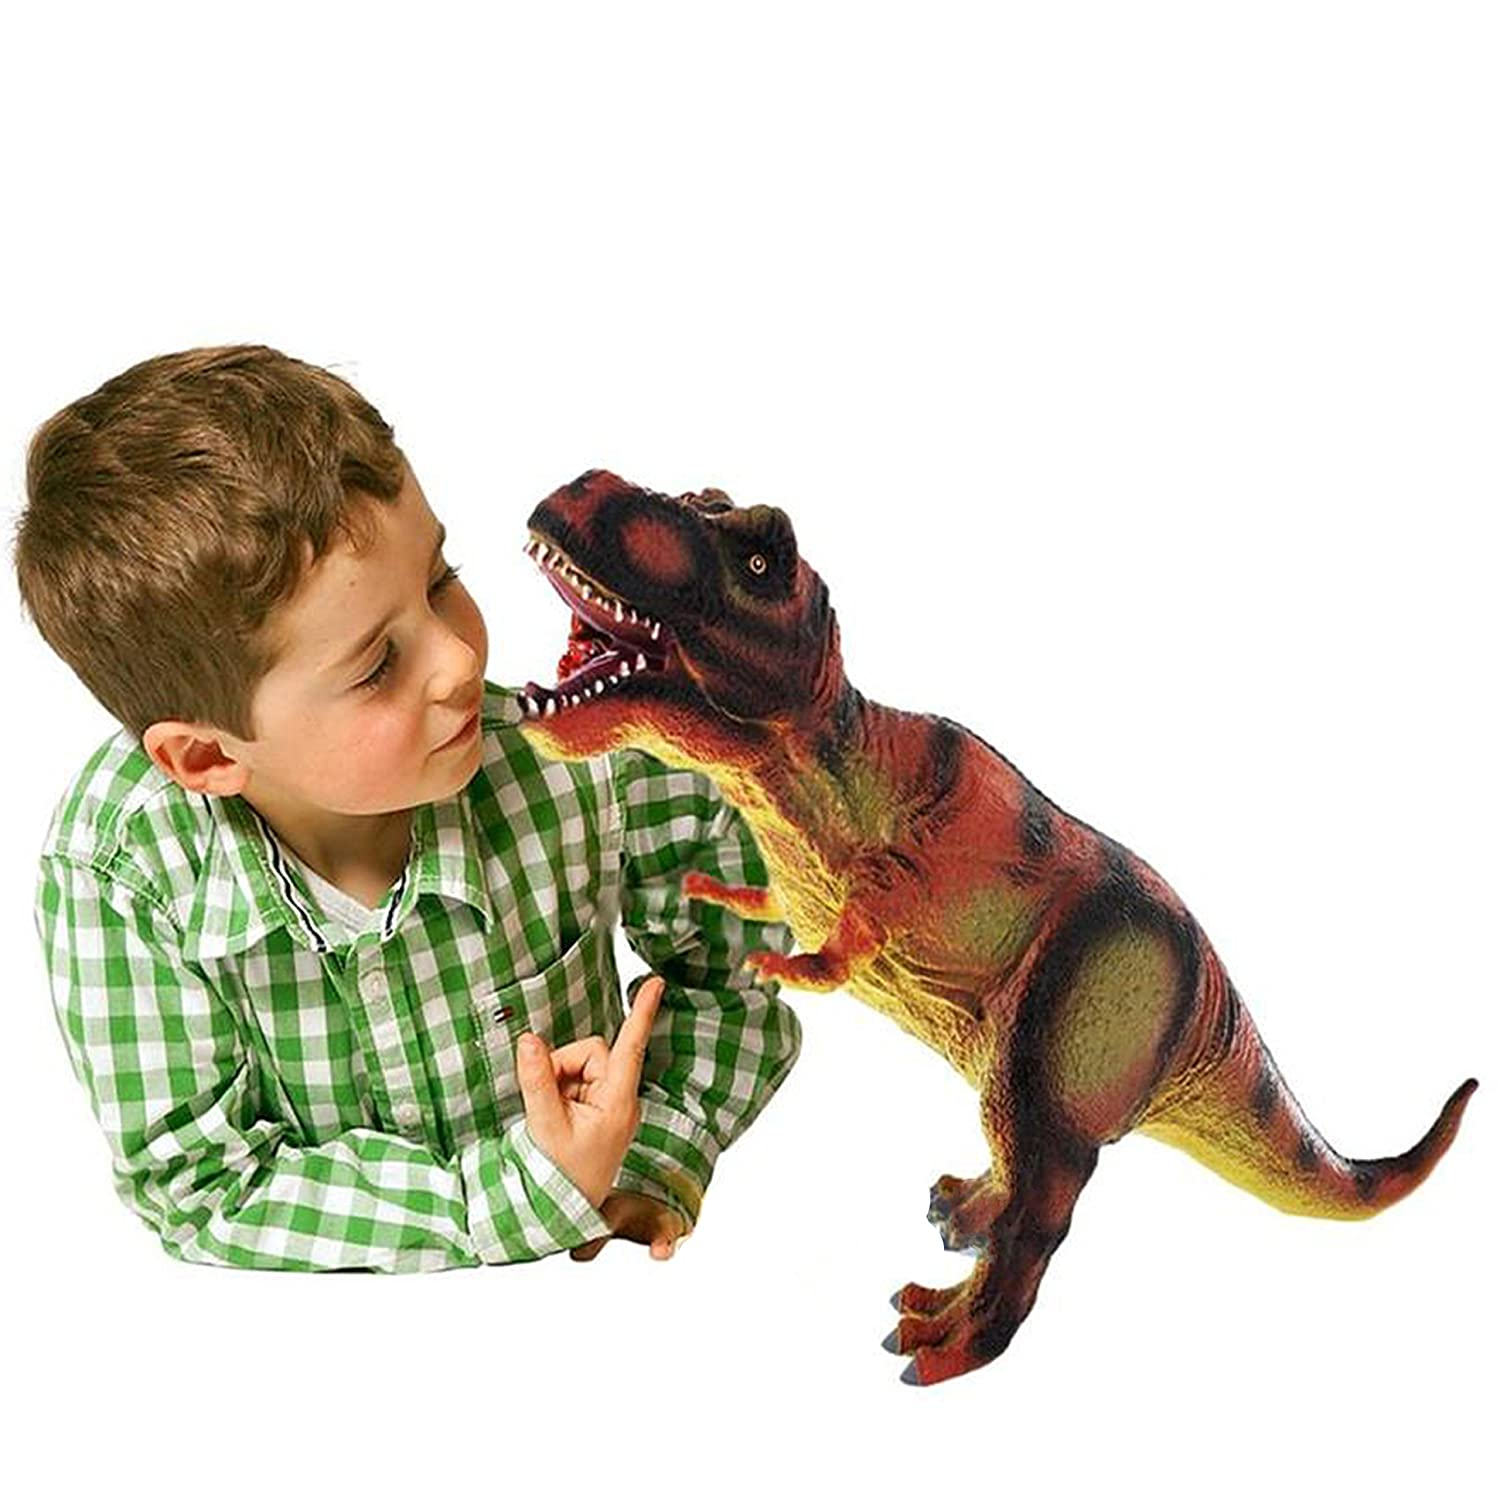 14 inch T-Rex Large Soft Foam Rubber Stuffed Dinosaur Toy Action Play Figure The Magic Toy Shop